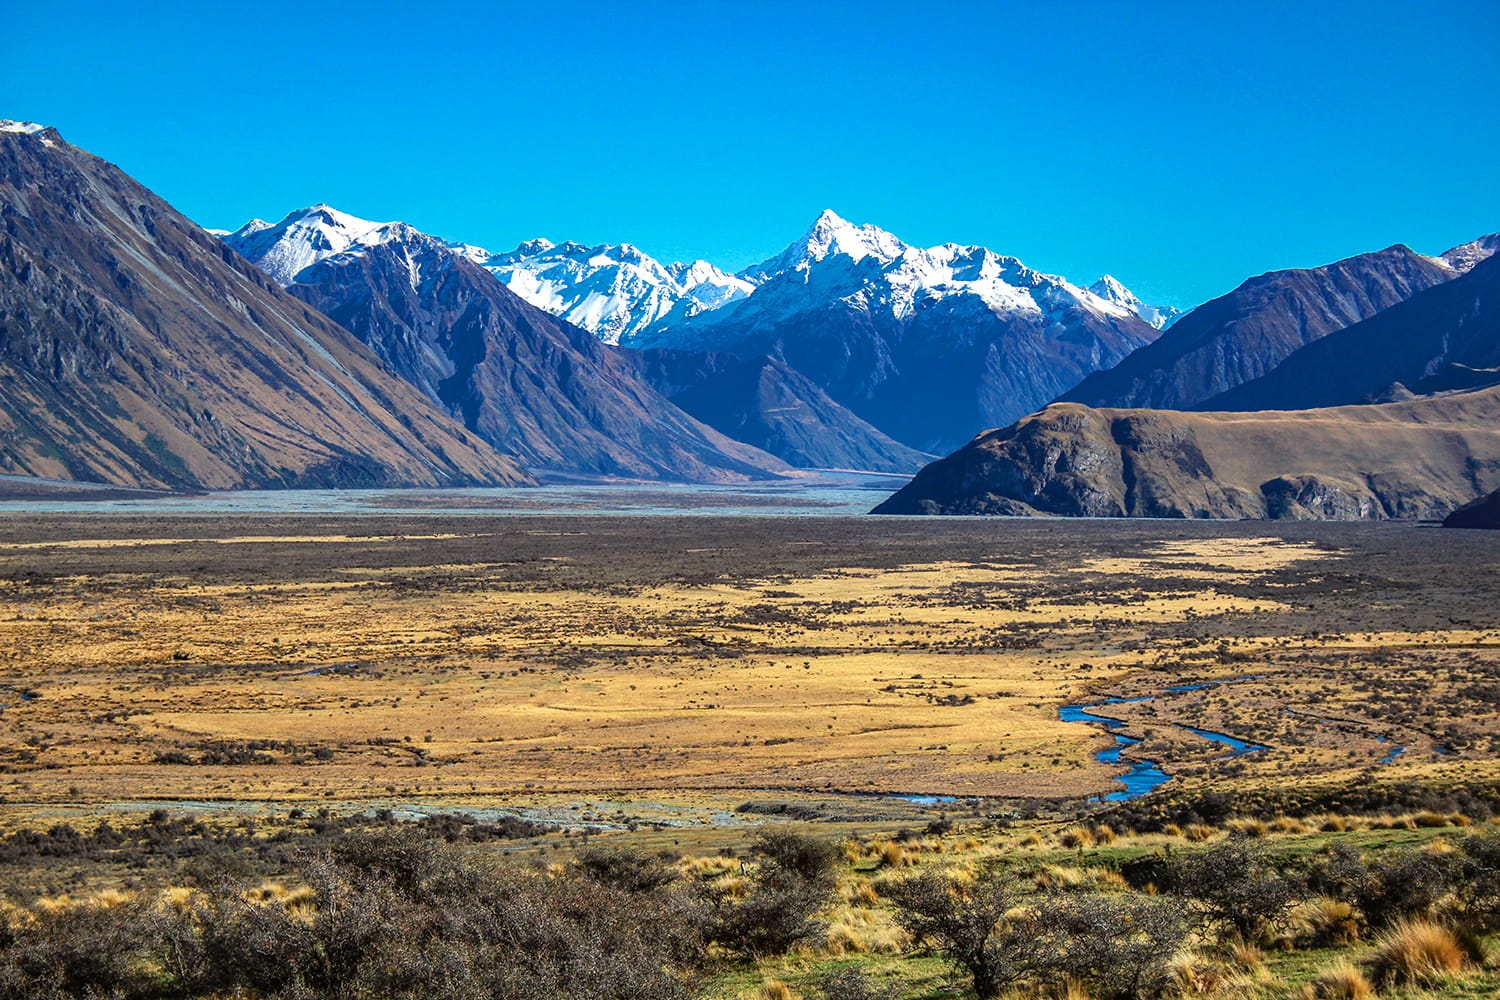 Scenic view of Mount Sunday and surroundings in Ashburton Lakes District, South Island, New Zealand